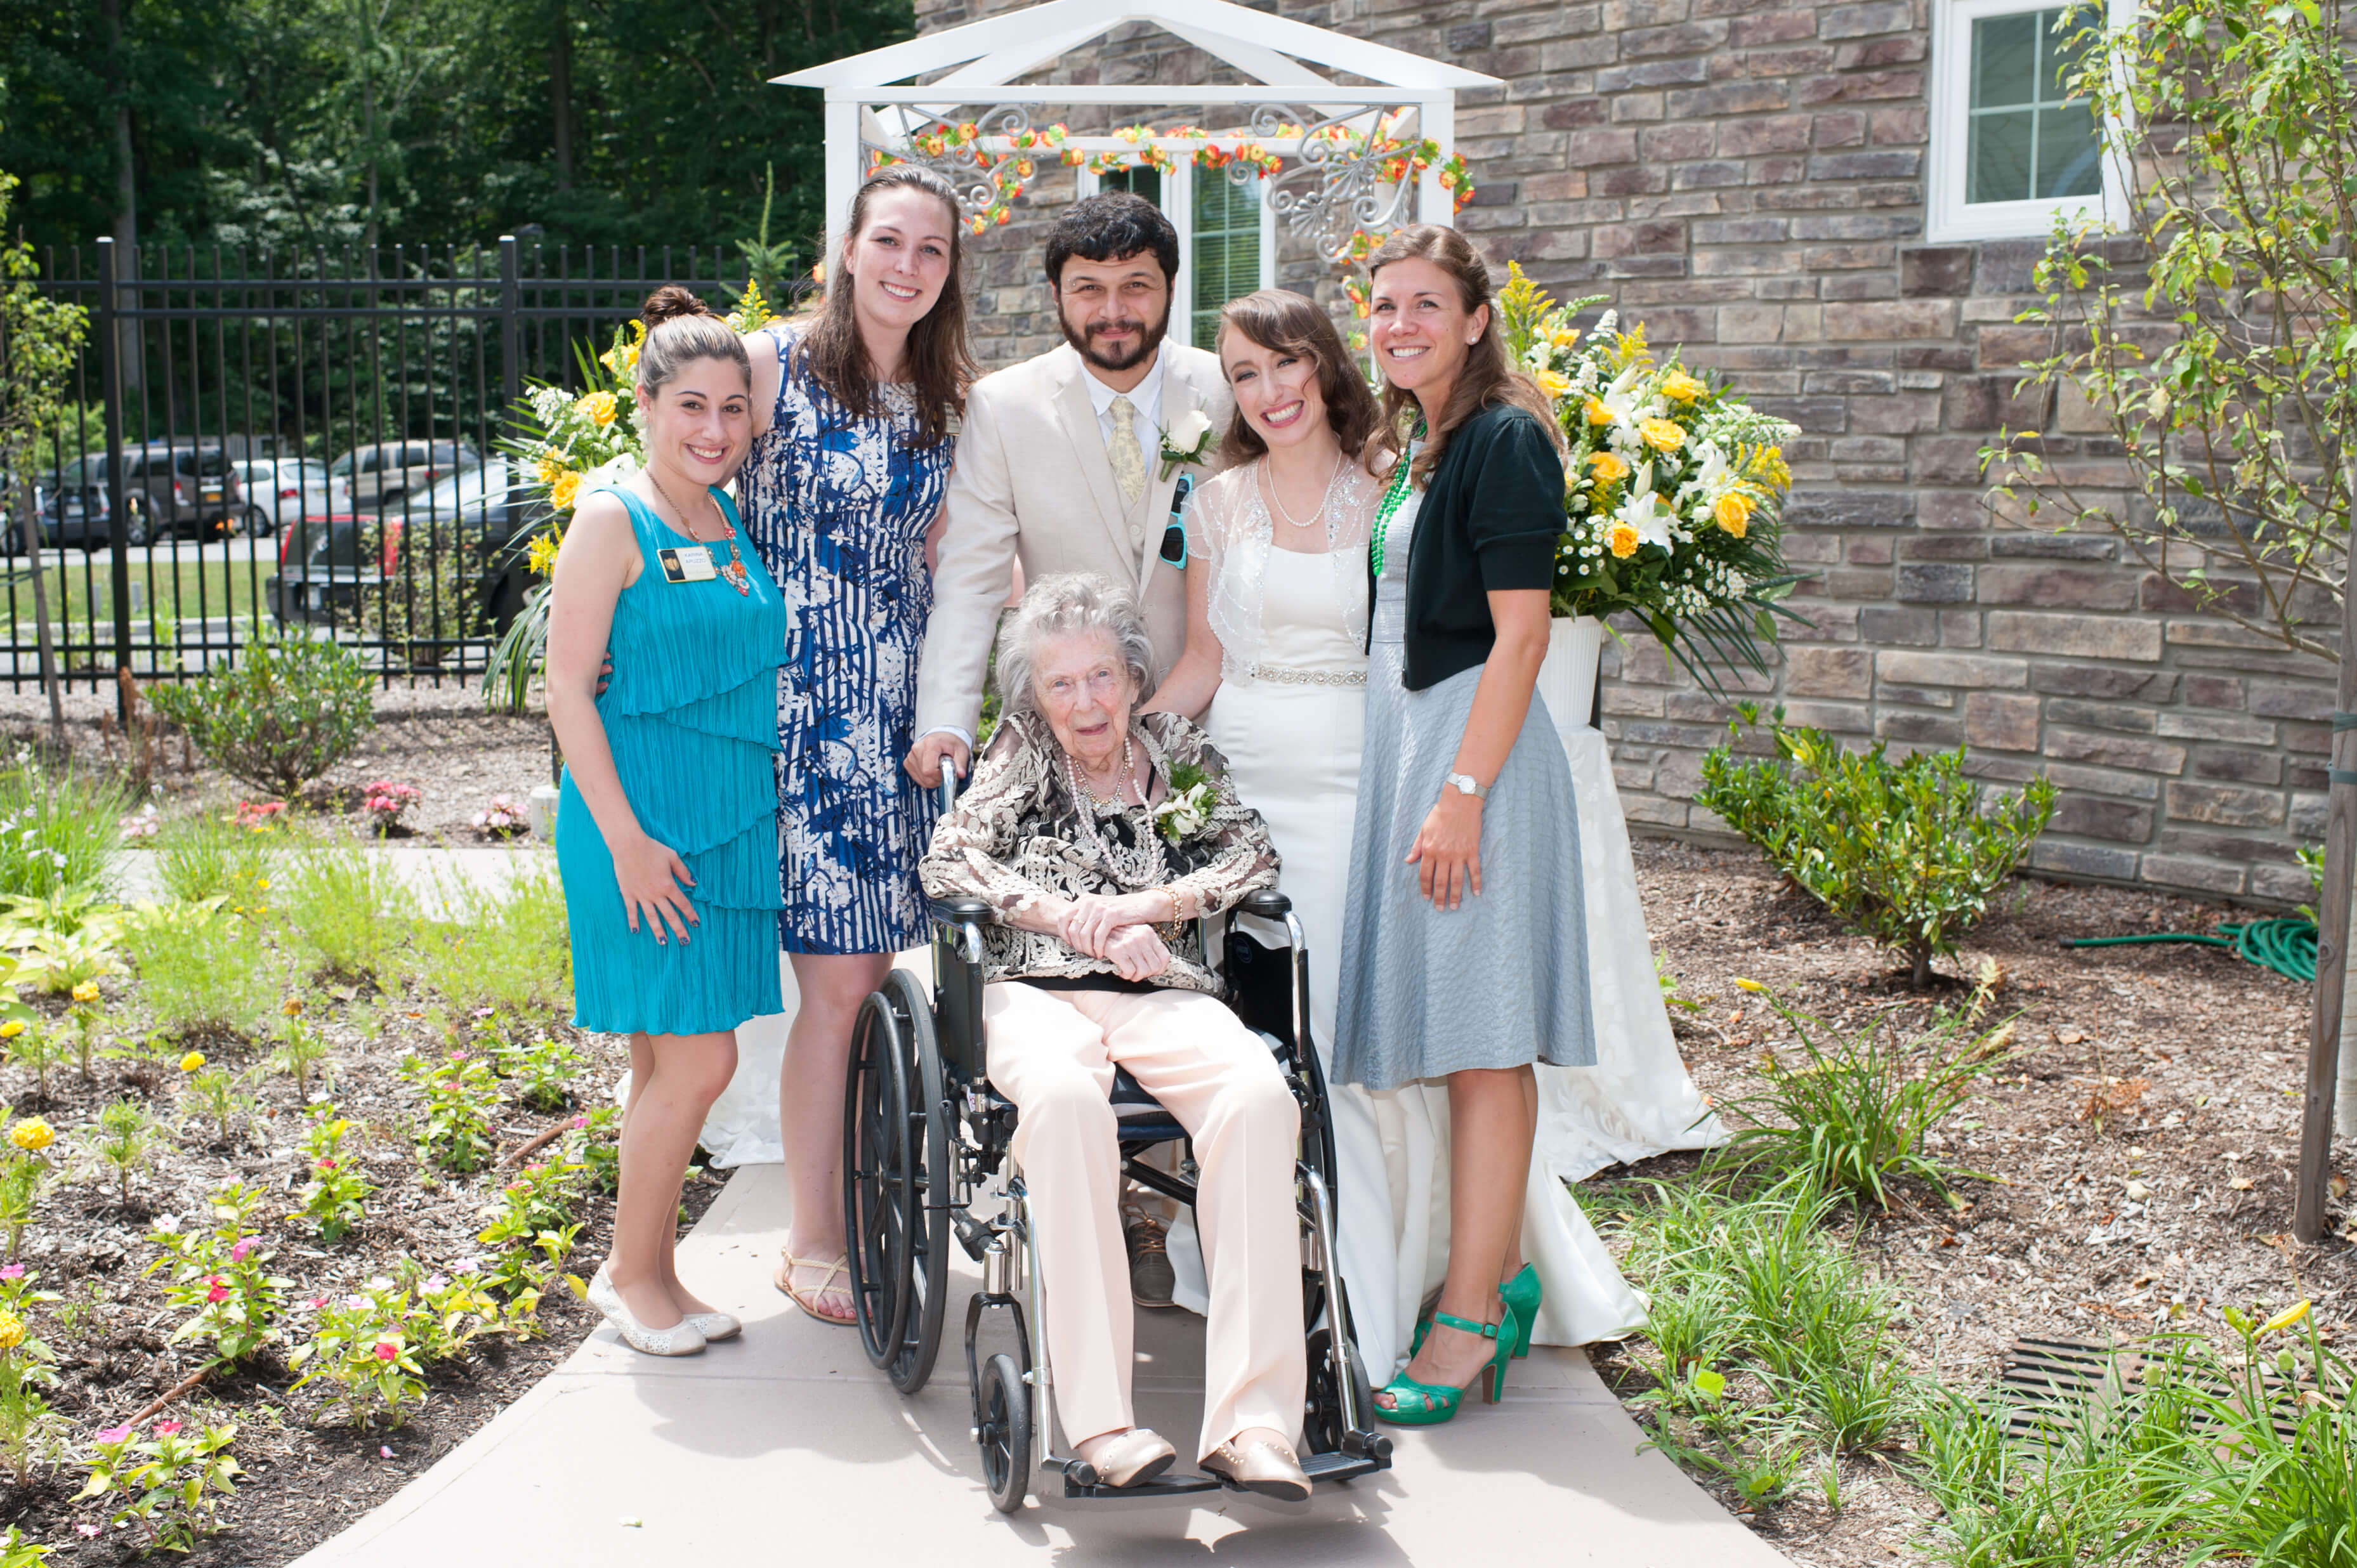 Wedding Bells at The Ambassador of Scarsdale: Love in the Age of Alzheimer's